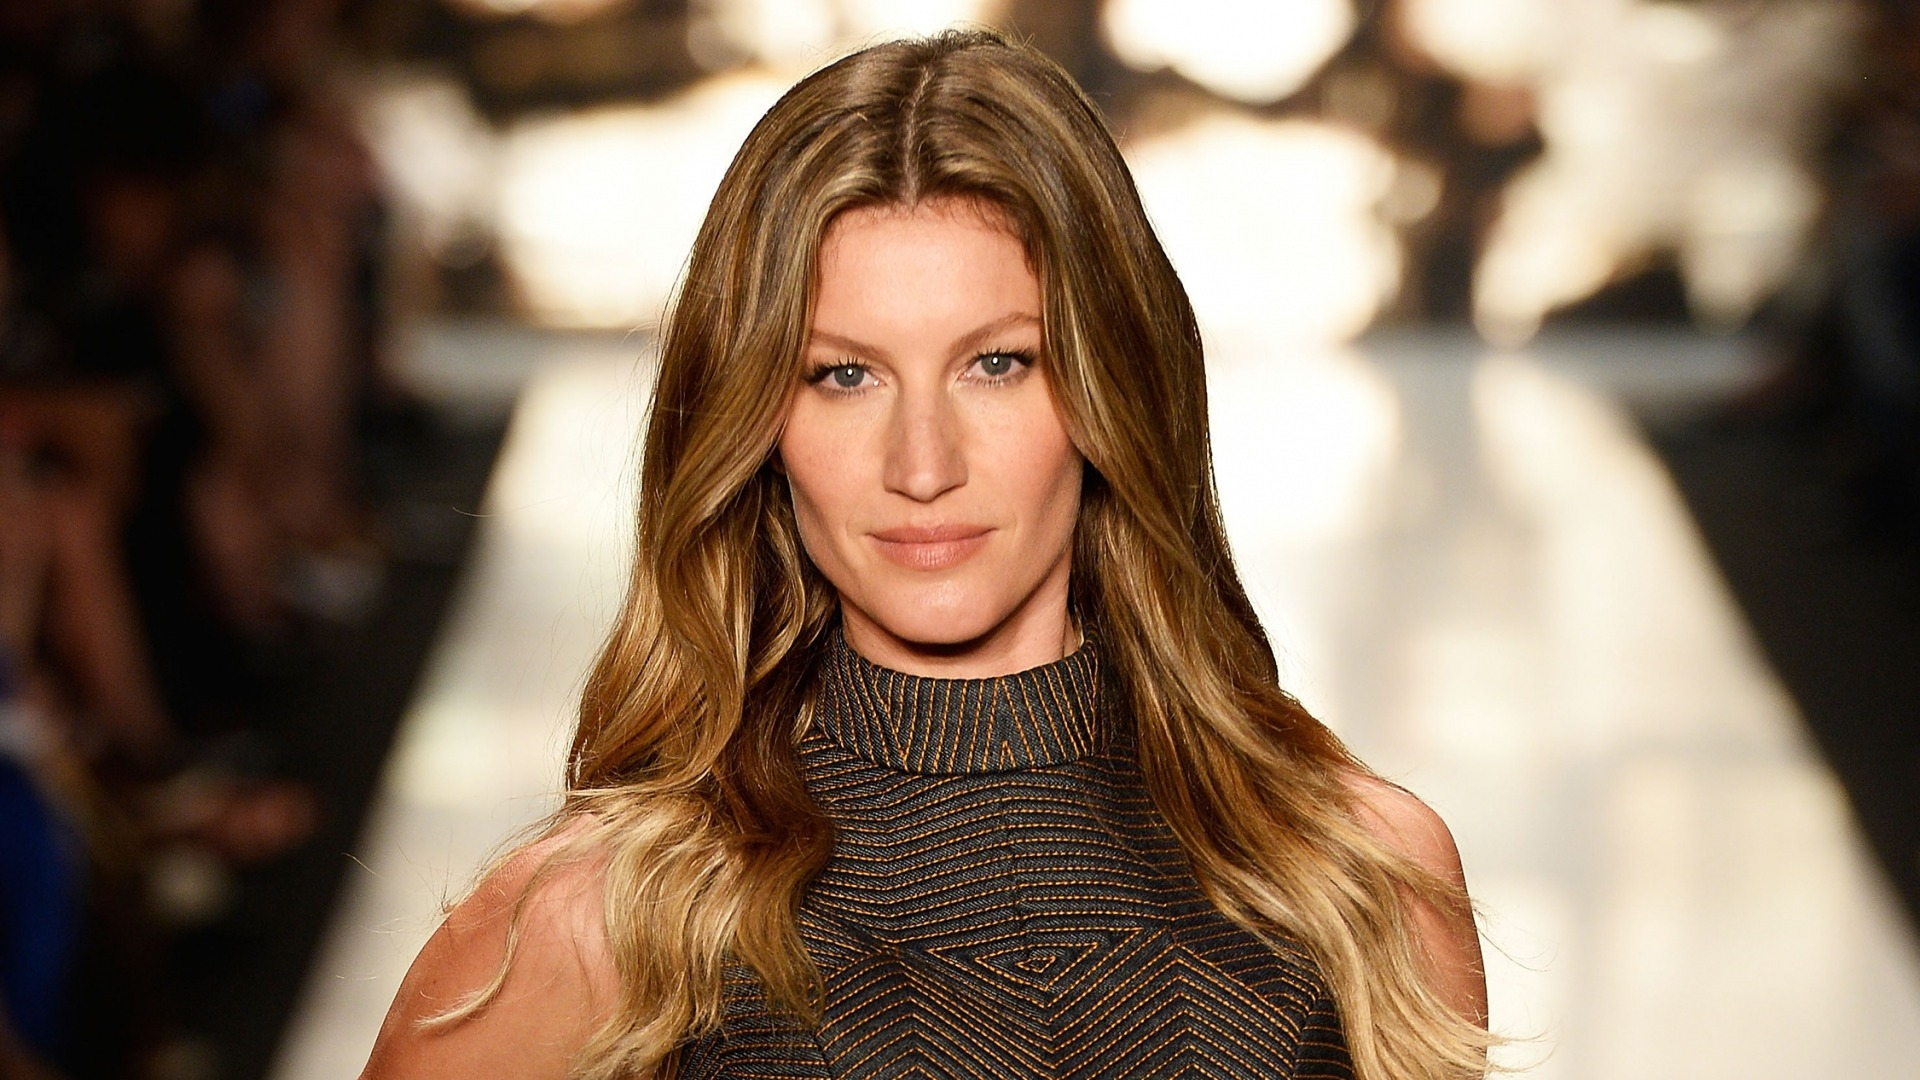 Gisele Bundchen Wallpapers Images Photos Pictures Backgrounds Gisele Bundchen